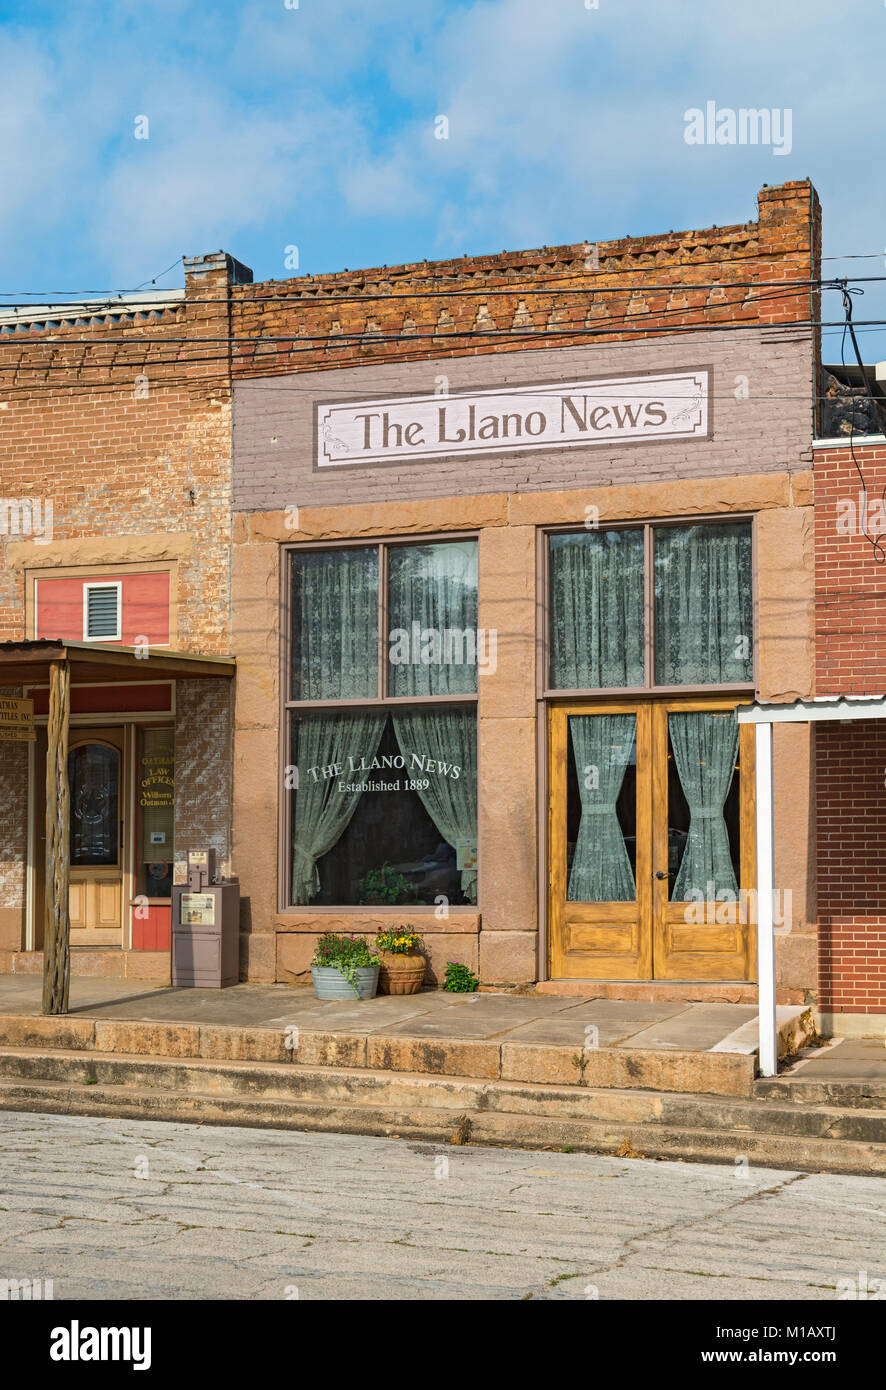 Texas, Hill Country, Llano News, est. 1889, 813 Berry Street, historic downtown - Stock Image